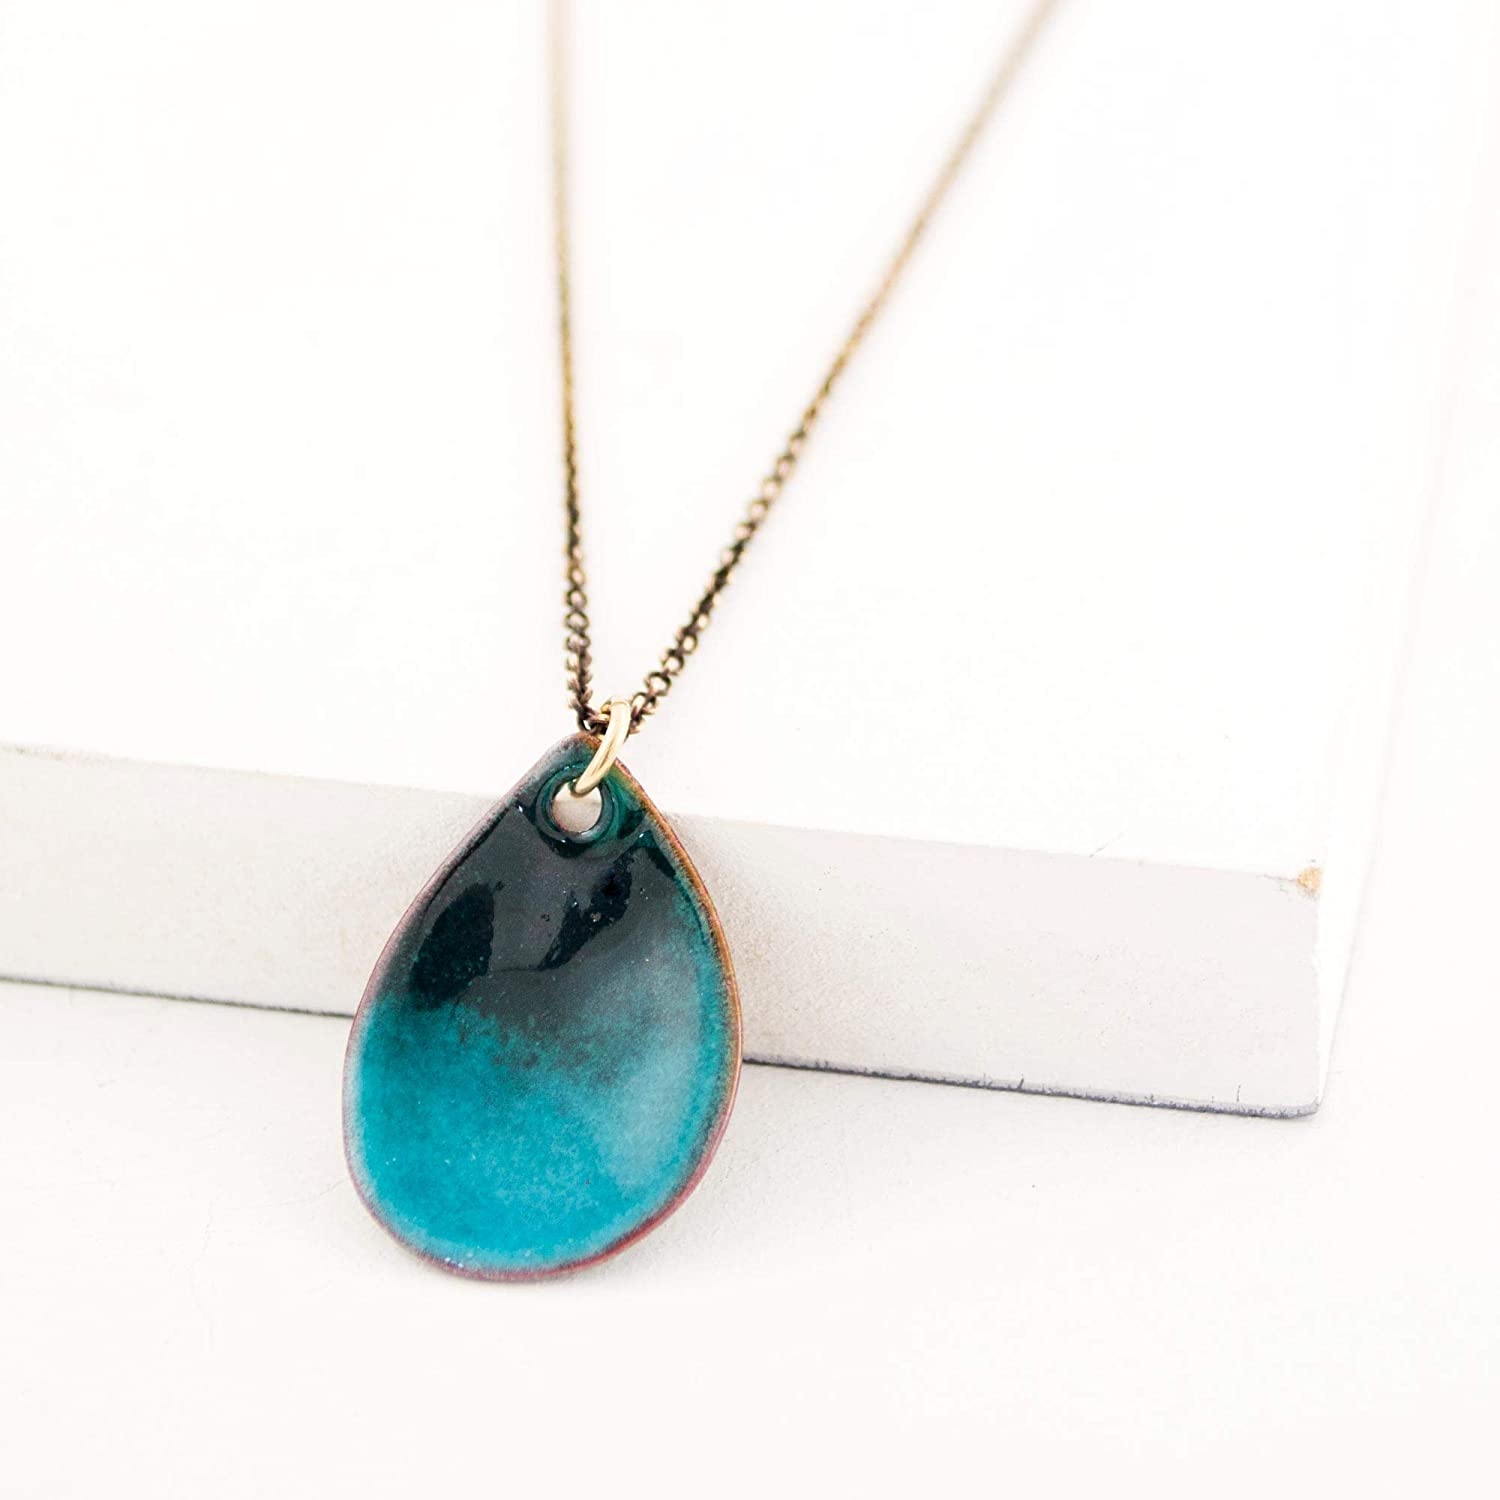 Turquoise enamel pendant necklace chain delicate with OFFicial Super special price site